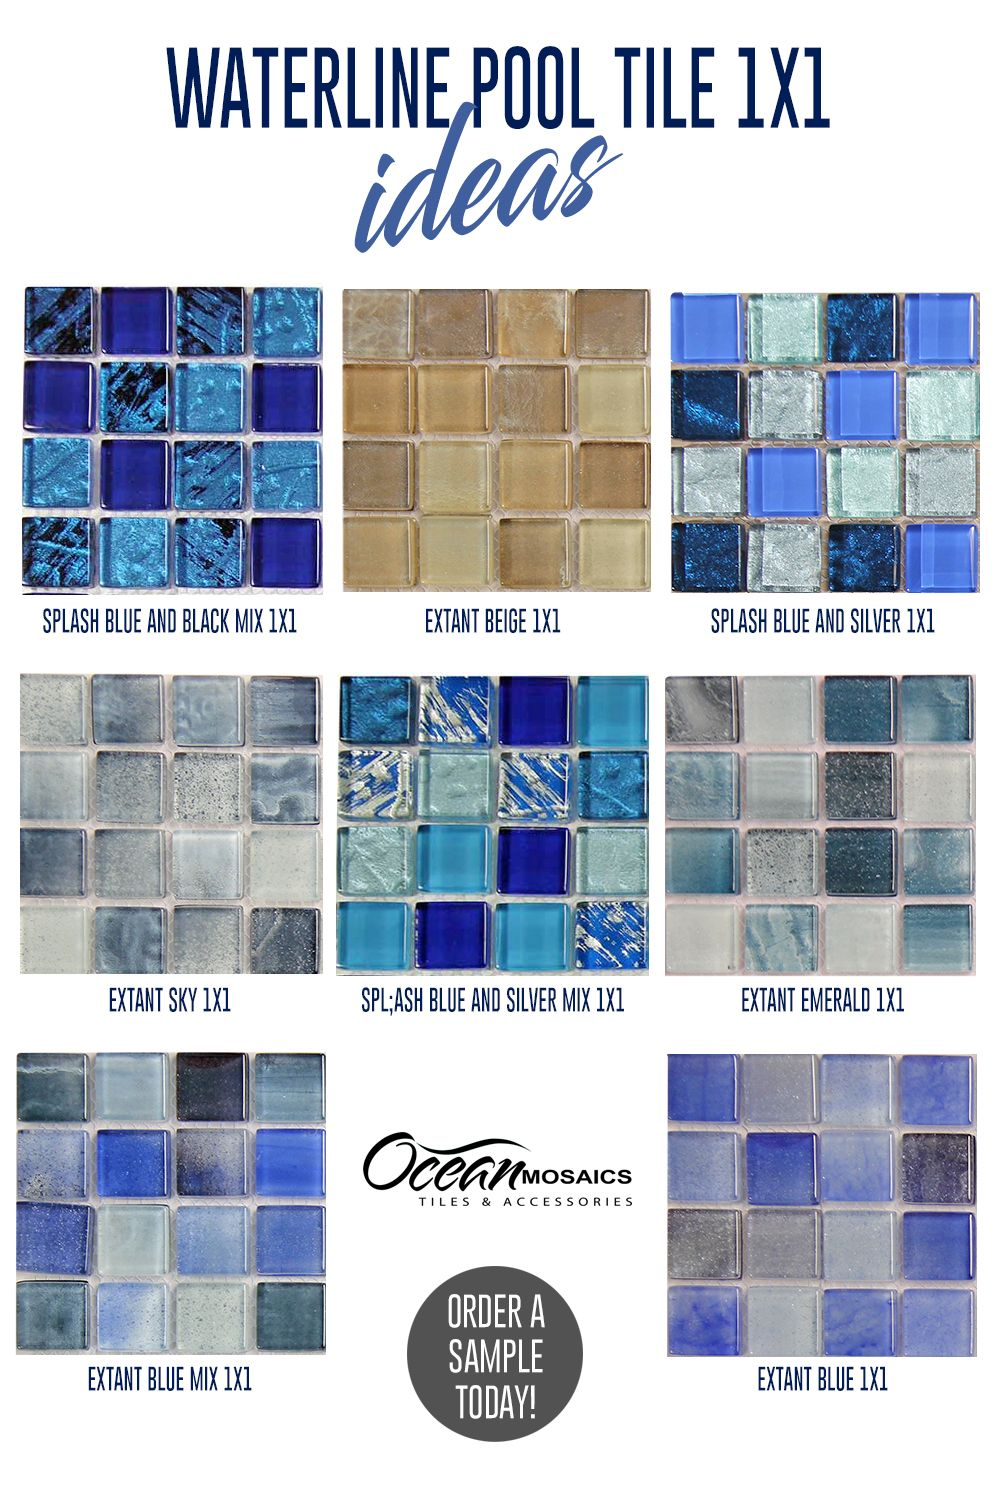 Waterline Pool Tile Ideas 1x1 In 2020 Waterline Pool Tile Pool Remodel Mosaic Pool Tile